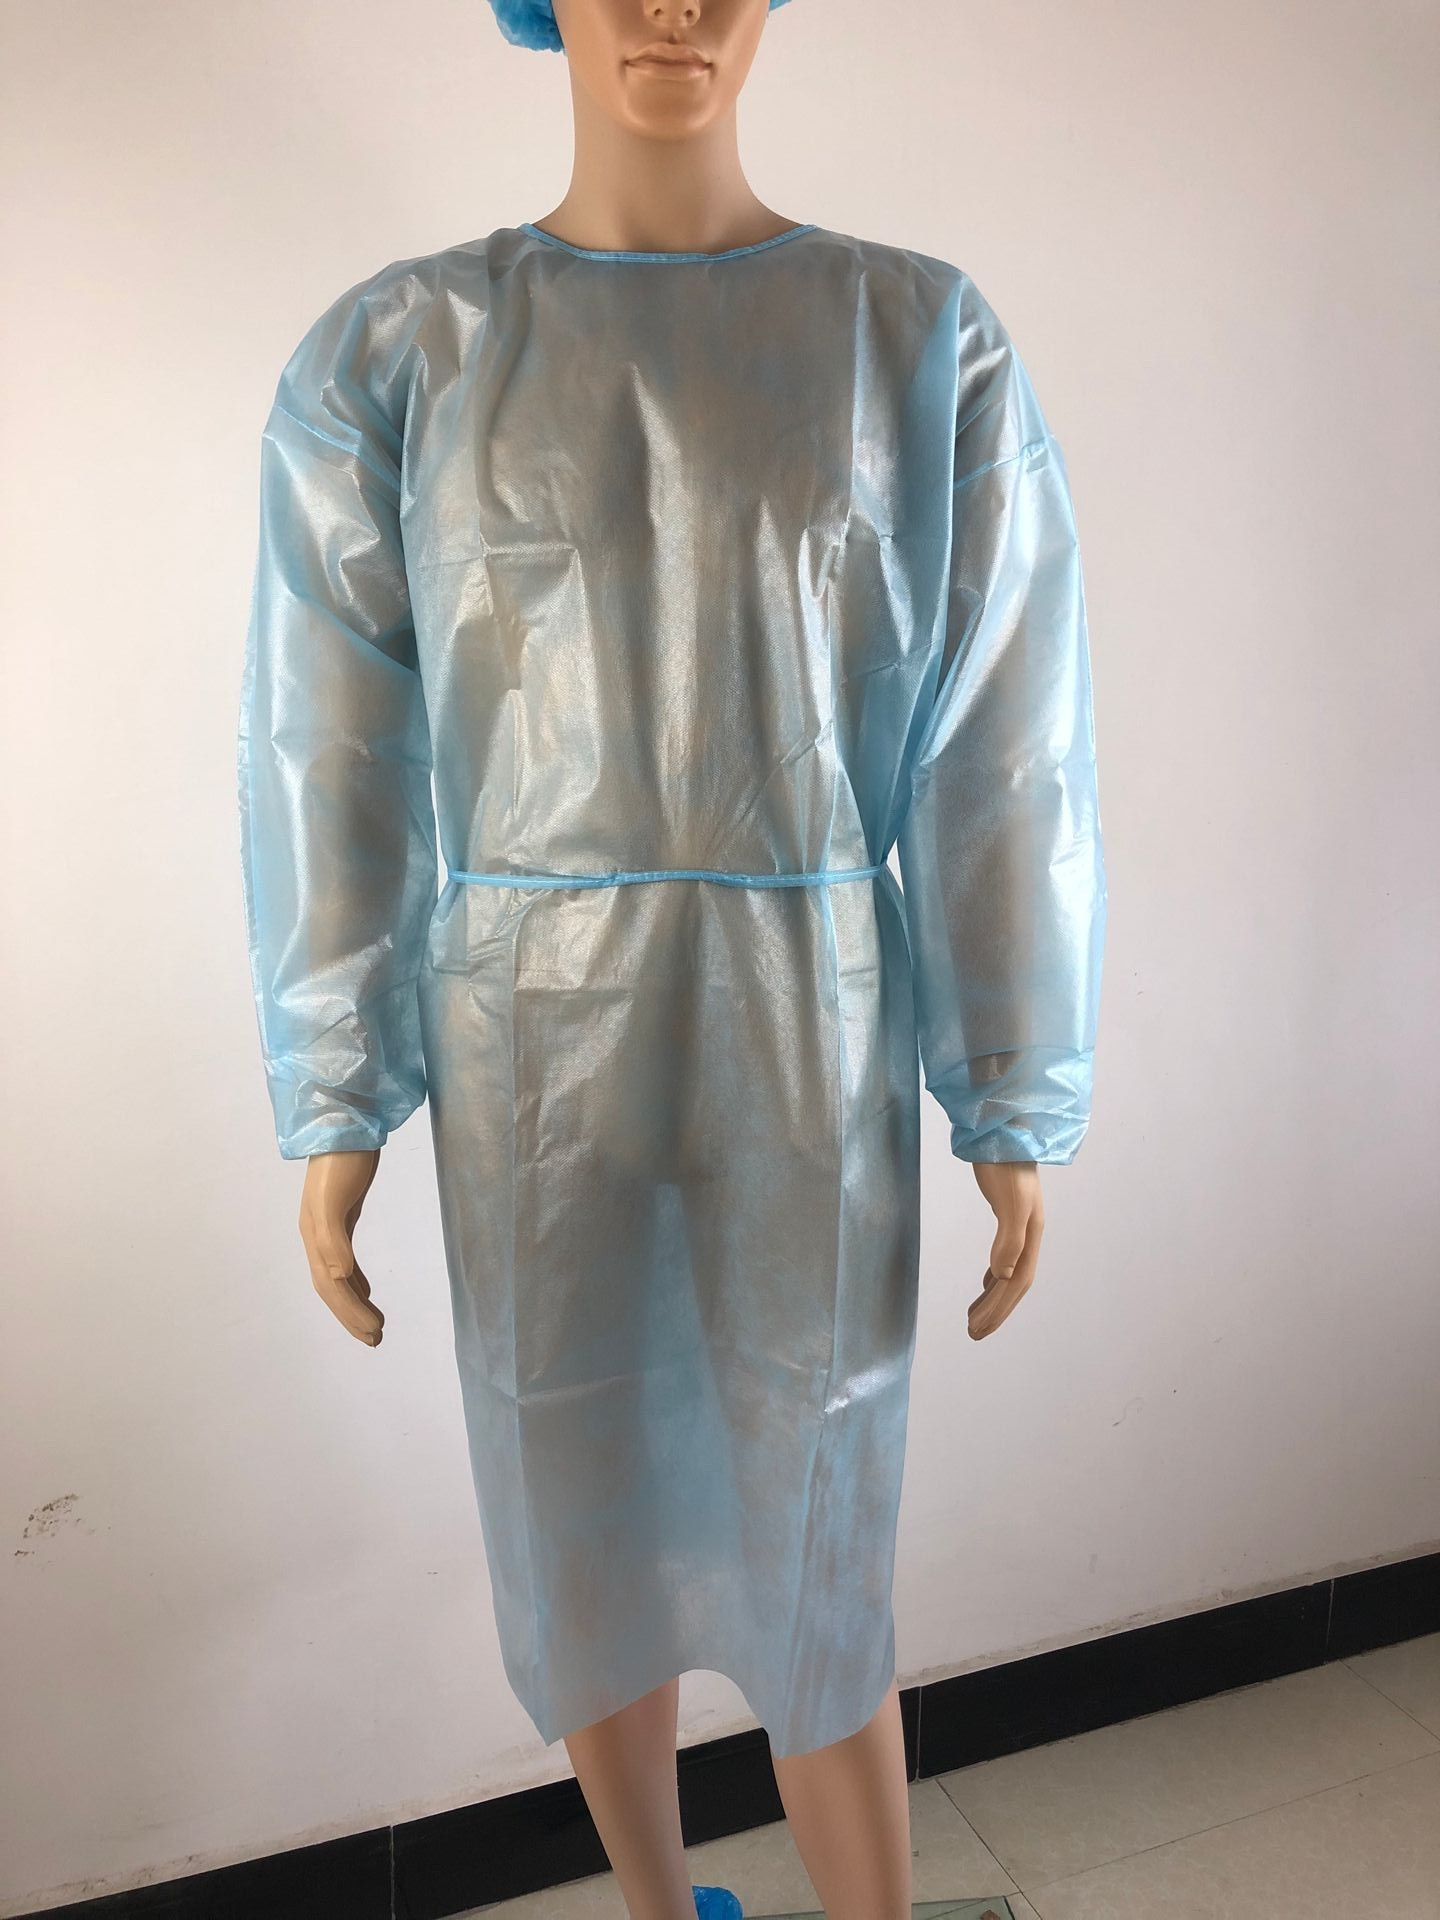 pp-pe-isolation-gown-4-.jpg